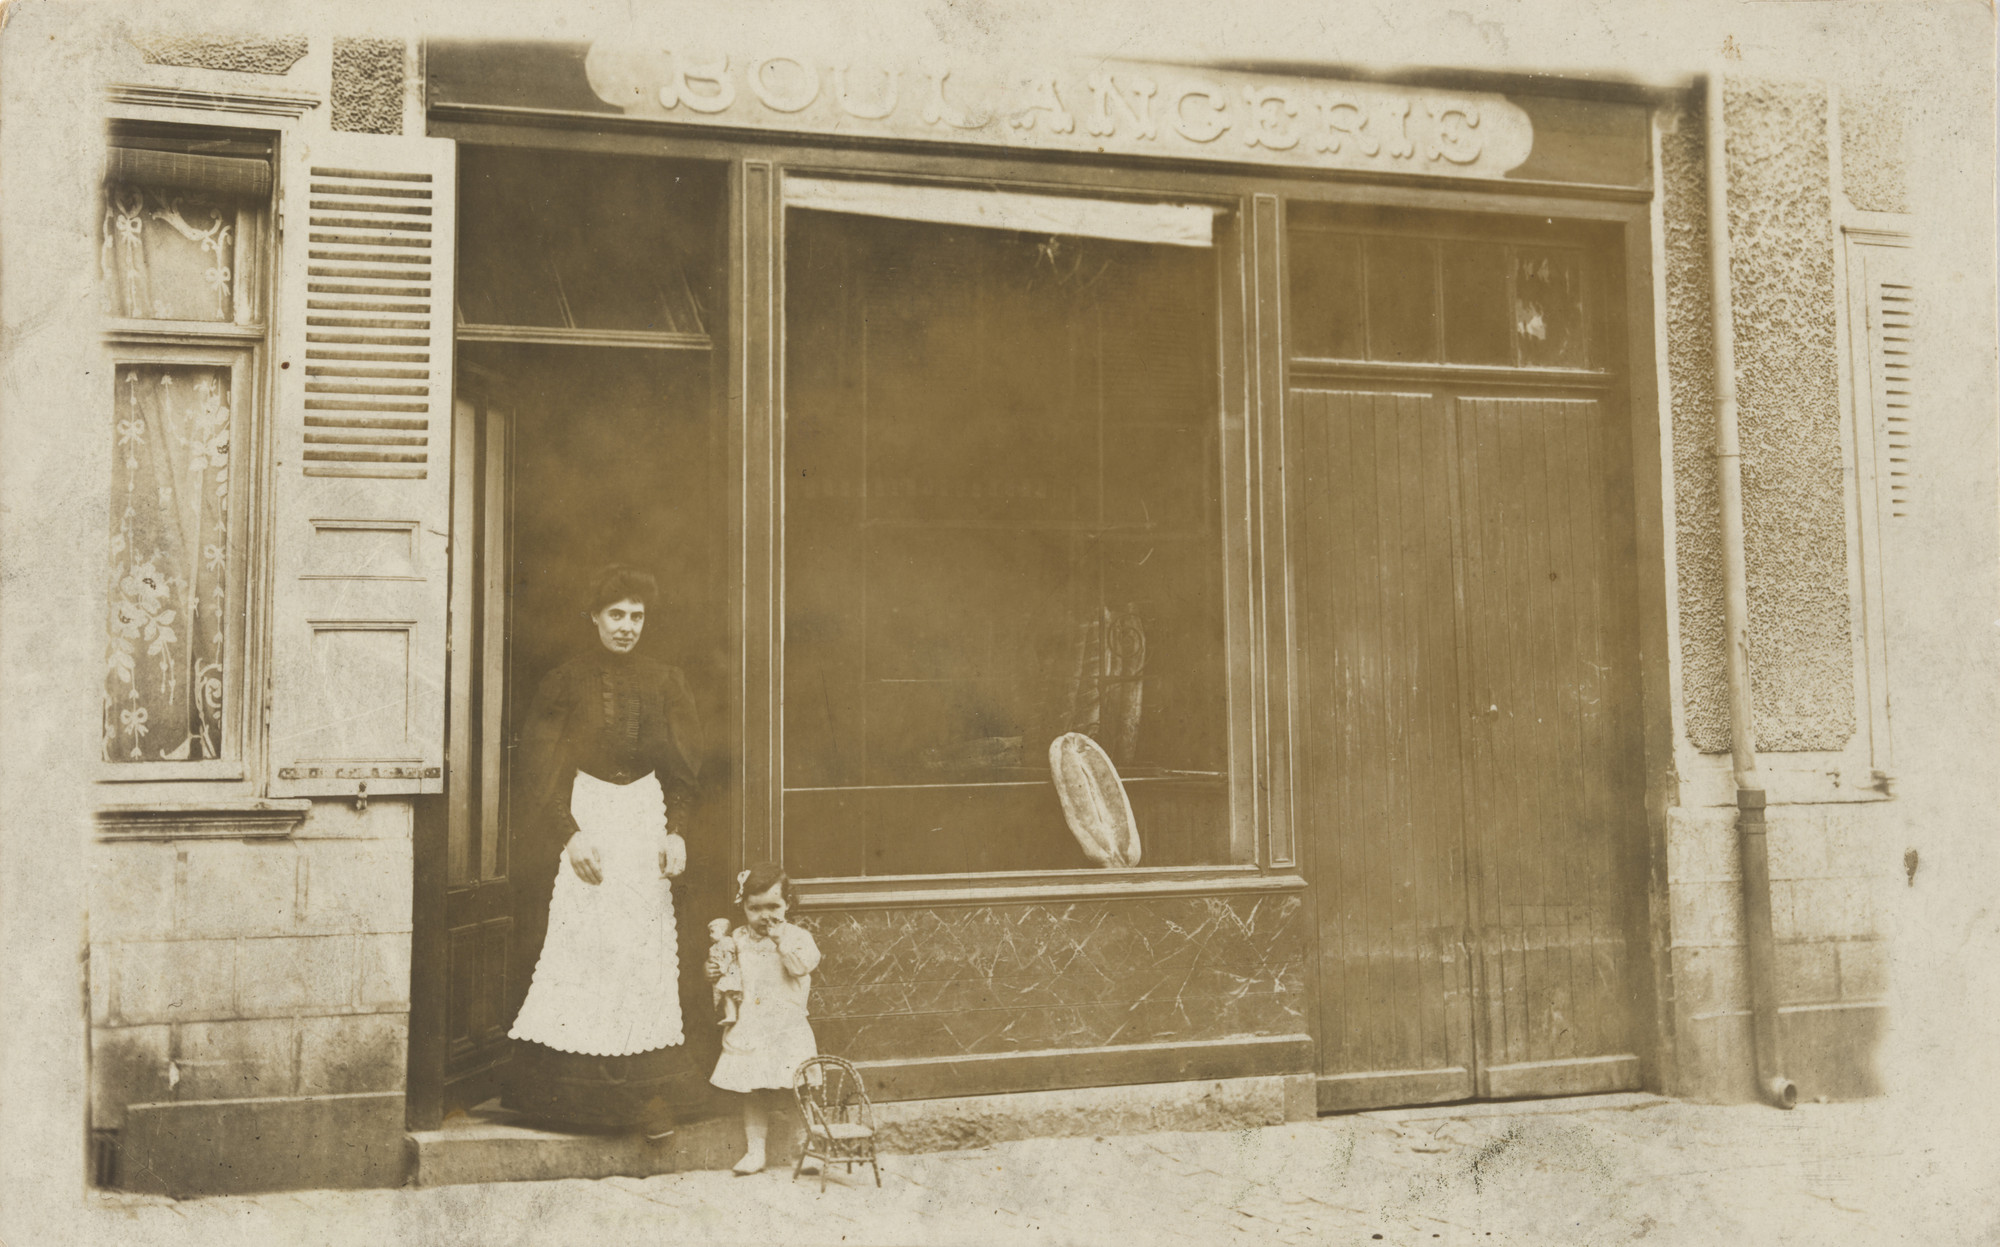 Unknown photographer. Boulangerie Renault, Riom-ès-Montagnes. c. 1905